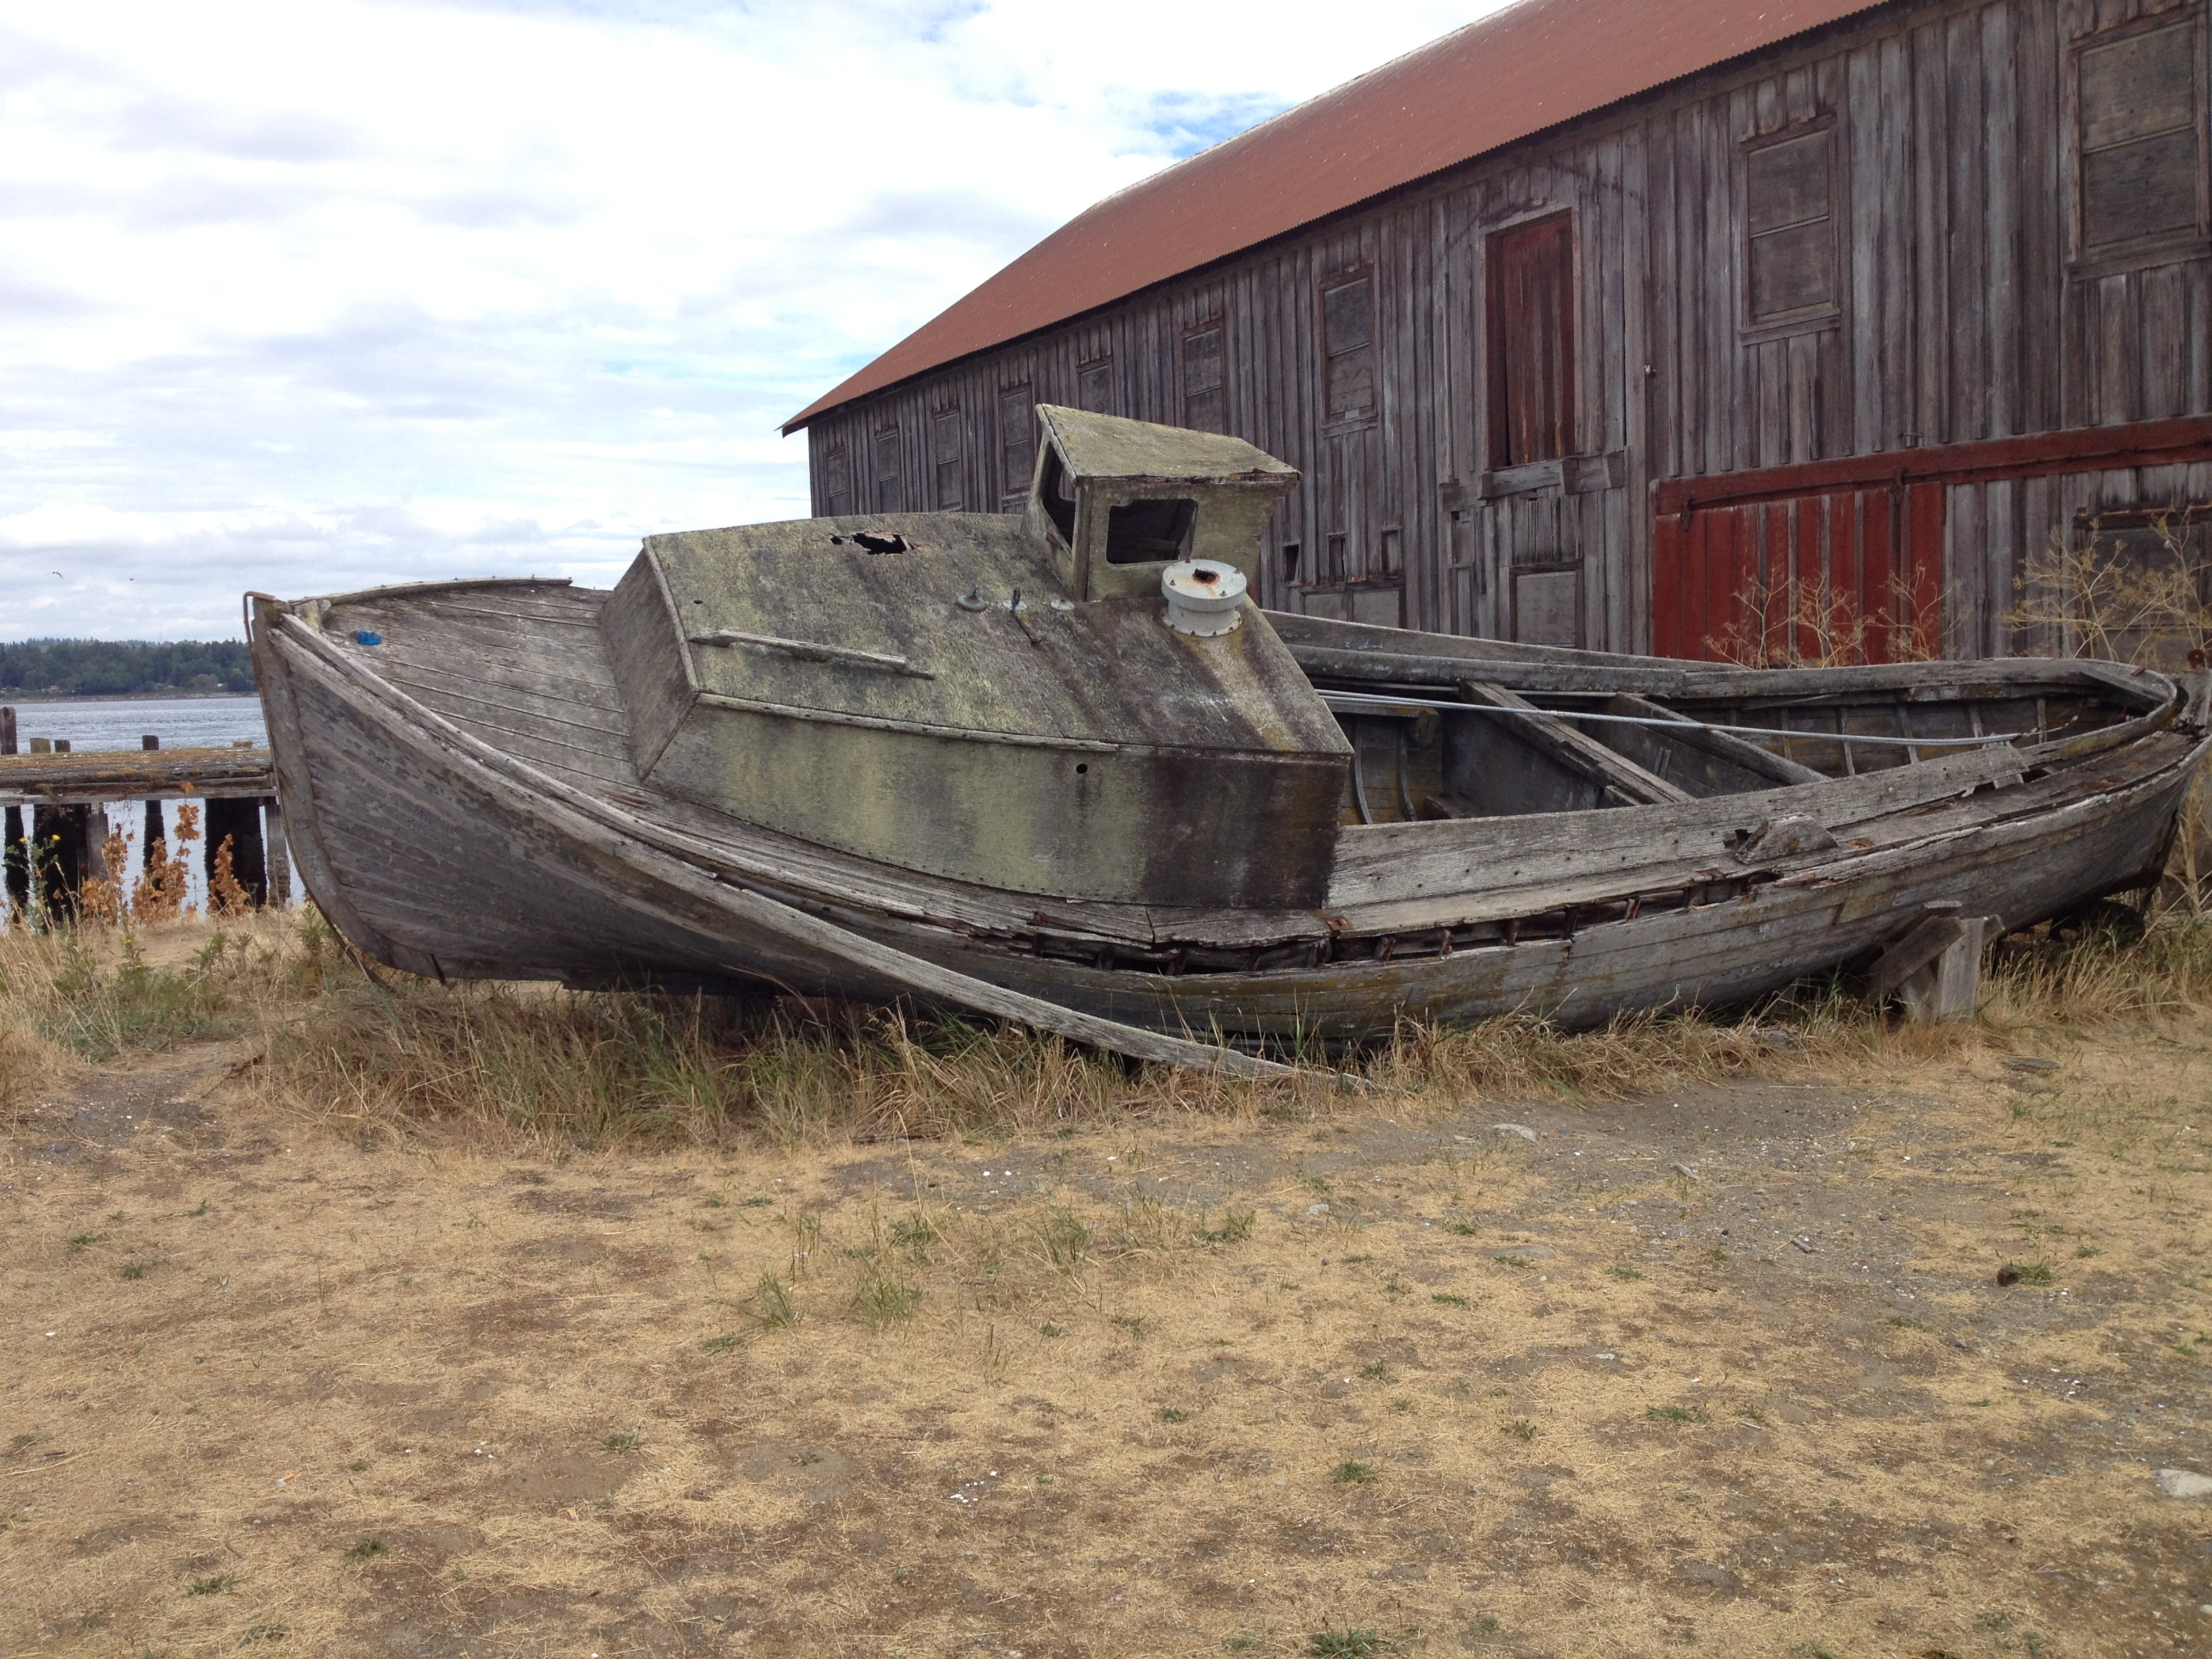 Dry grass, abandoned boat, and old shed